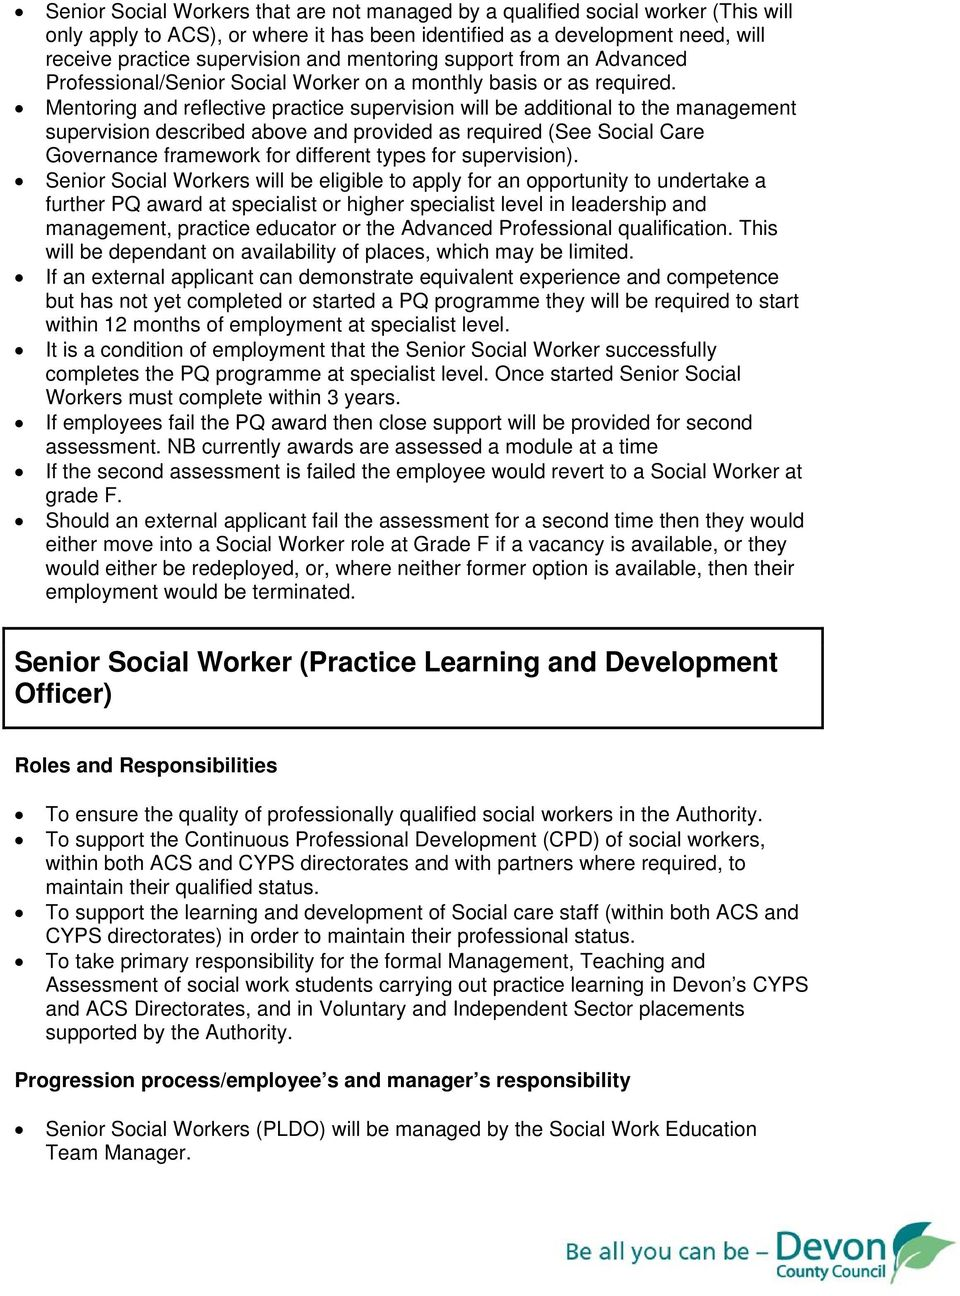 Senior Social Workers will be eligible to apply for an opportunity to undertake a further PQ award at specialist or higher specialist level in leadership and management, practice educator or the